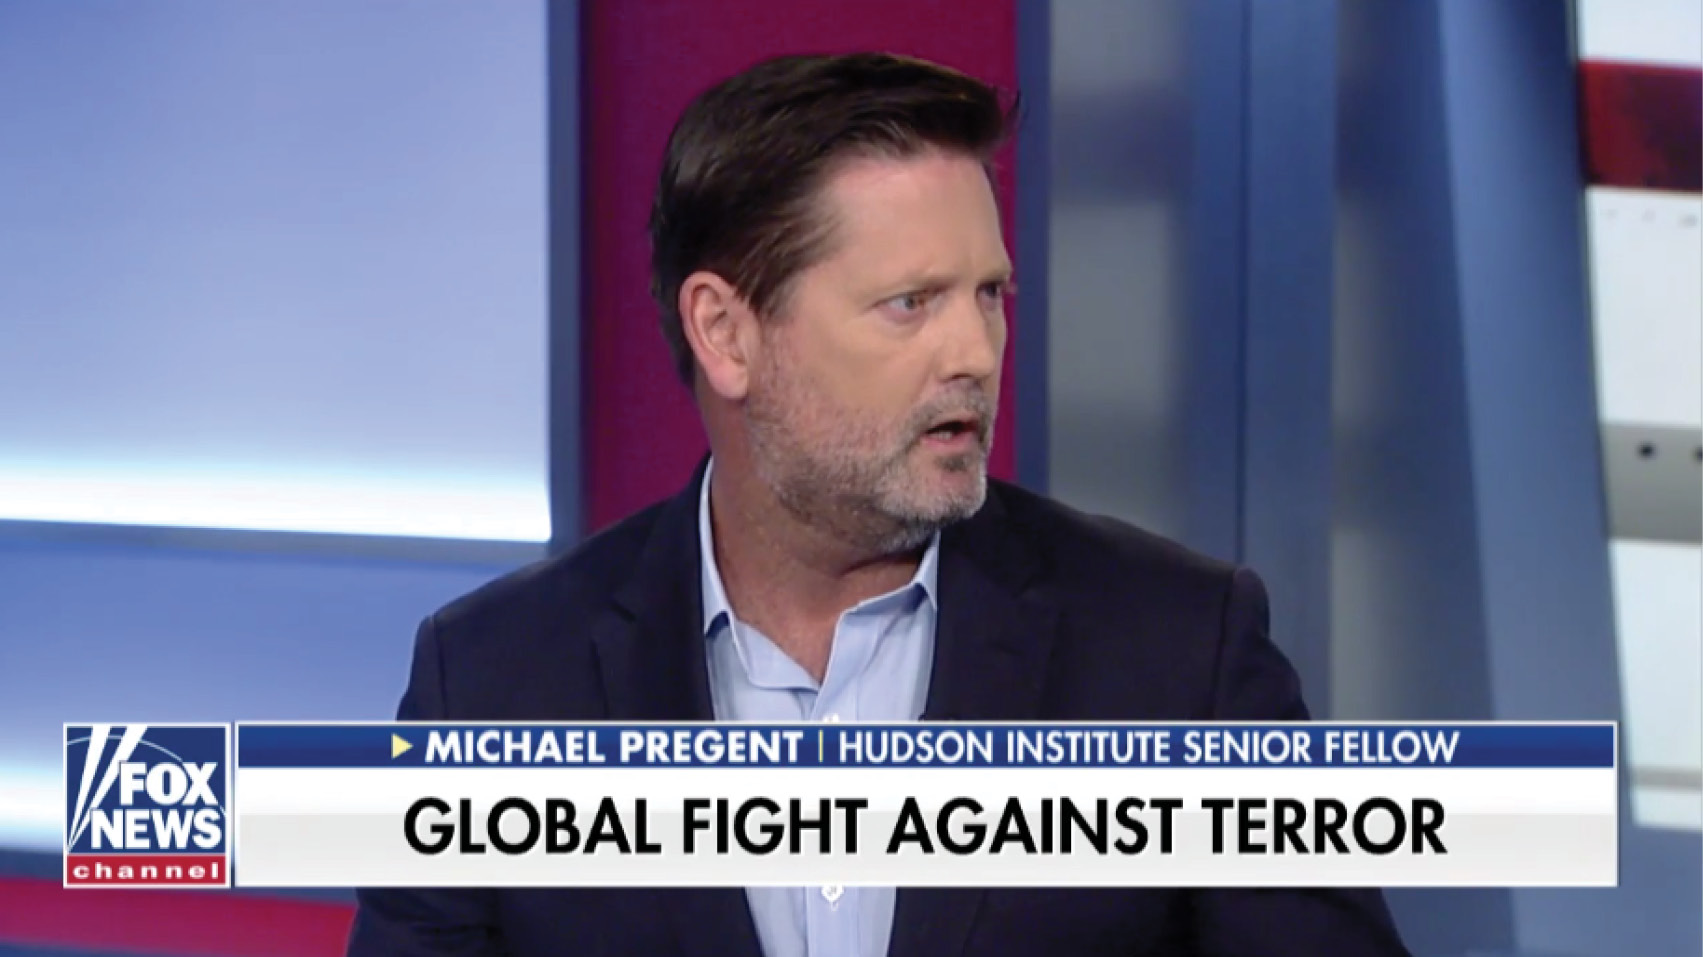 In an interview on Fox News, Michael Pregent discusses the global threat posed by ISIS and Al Qaeda.